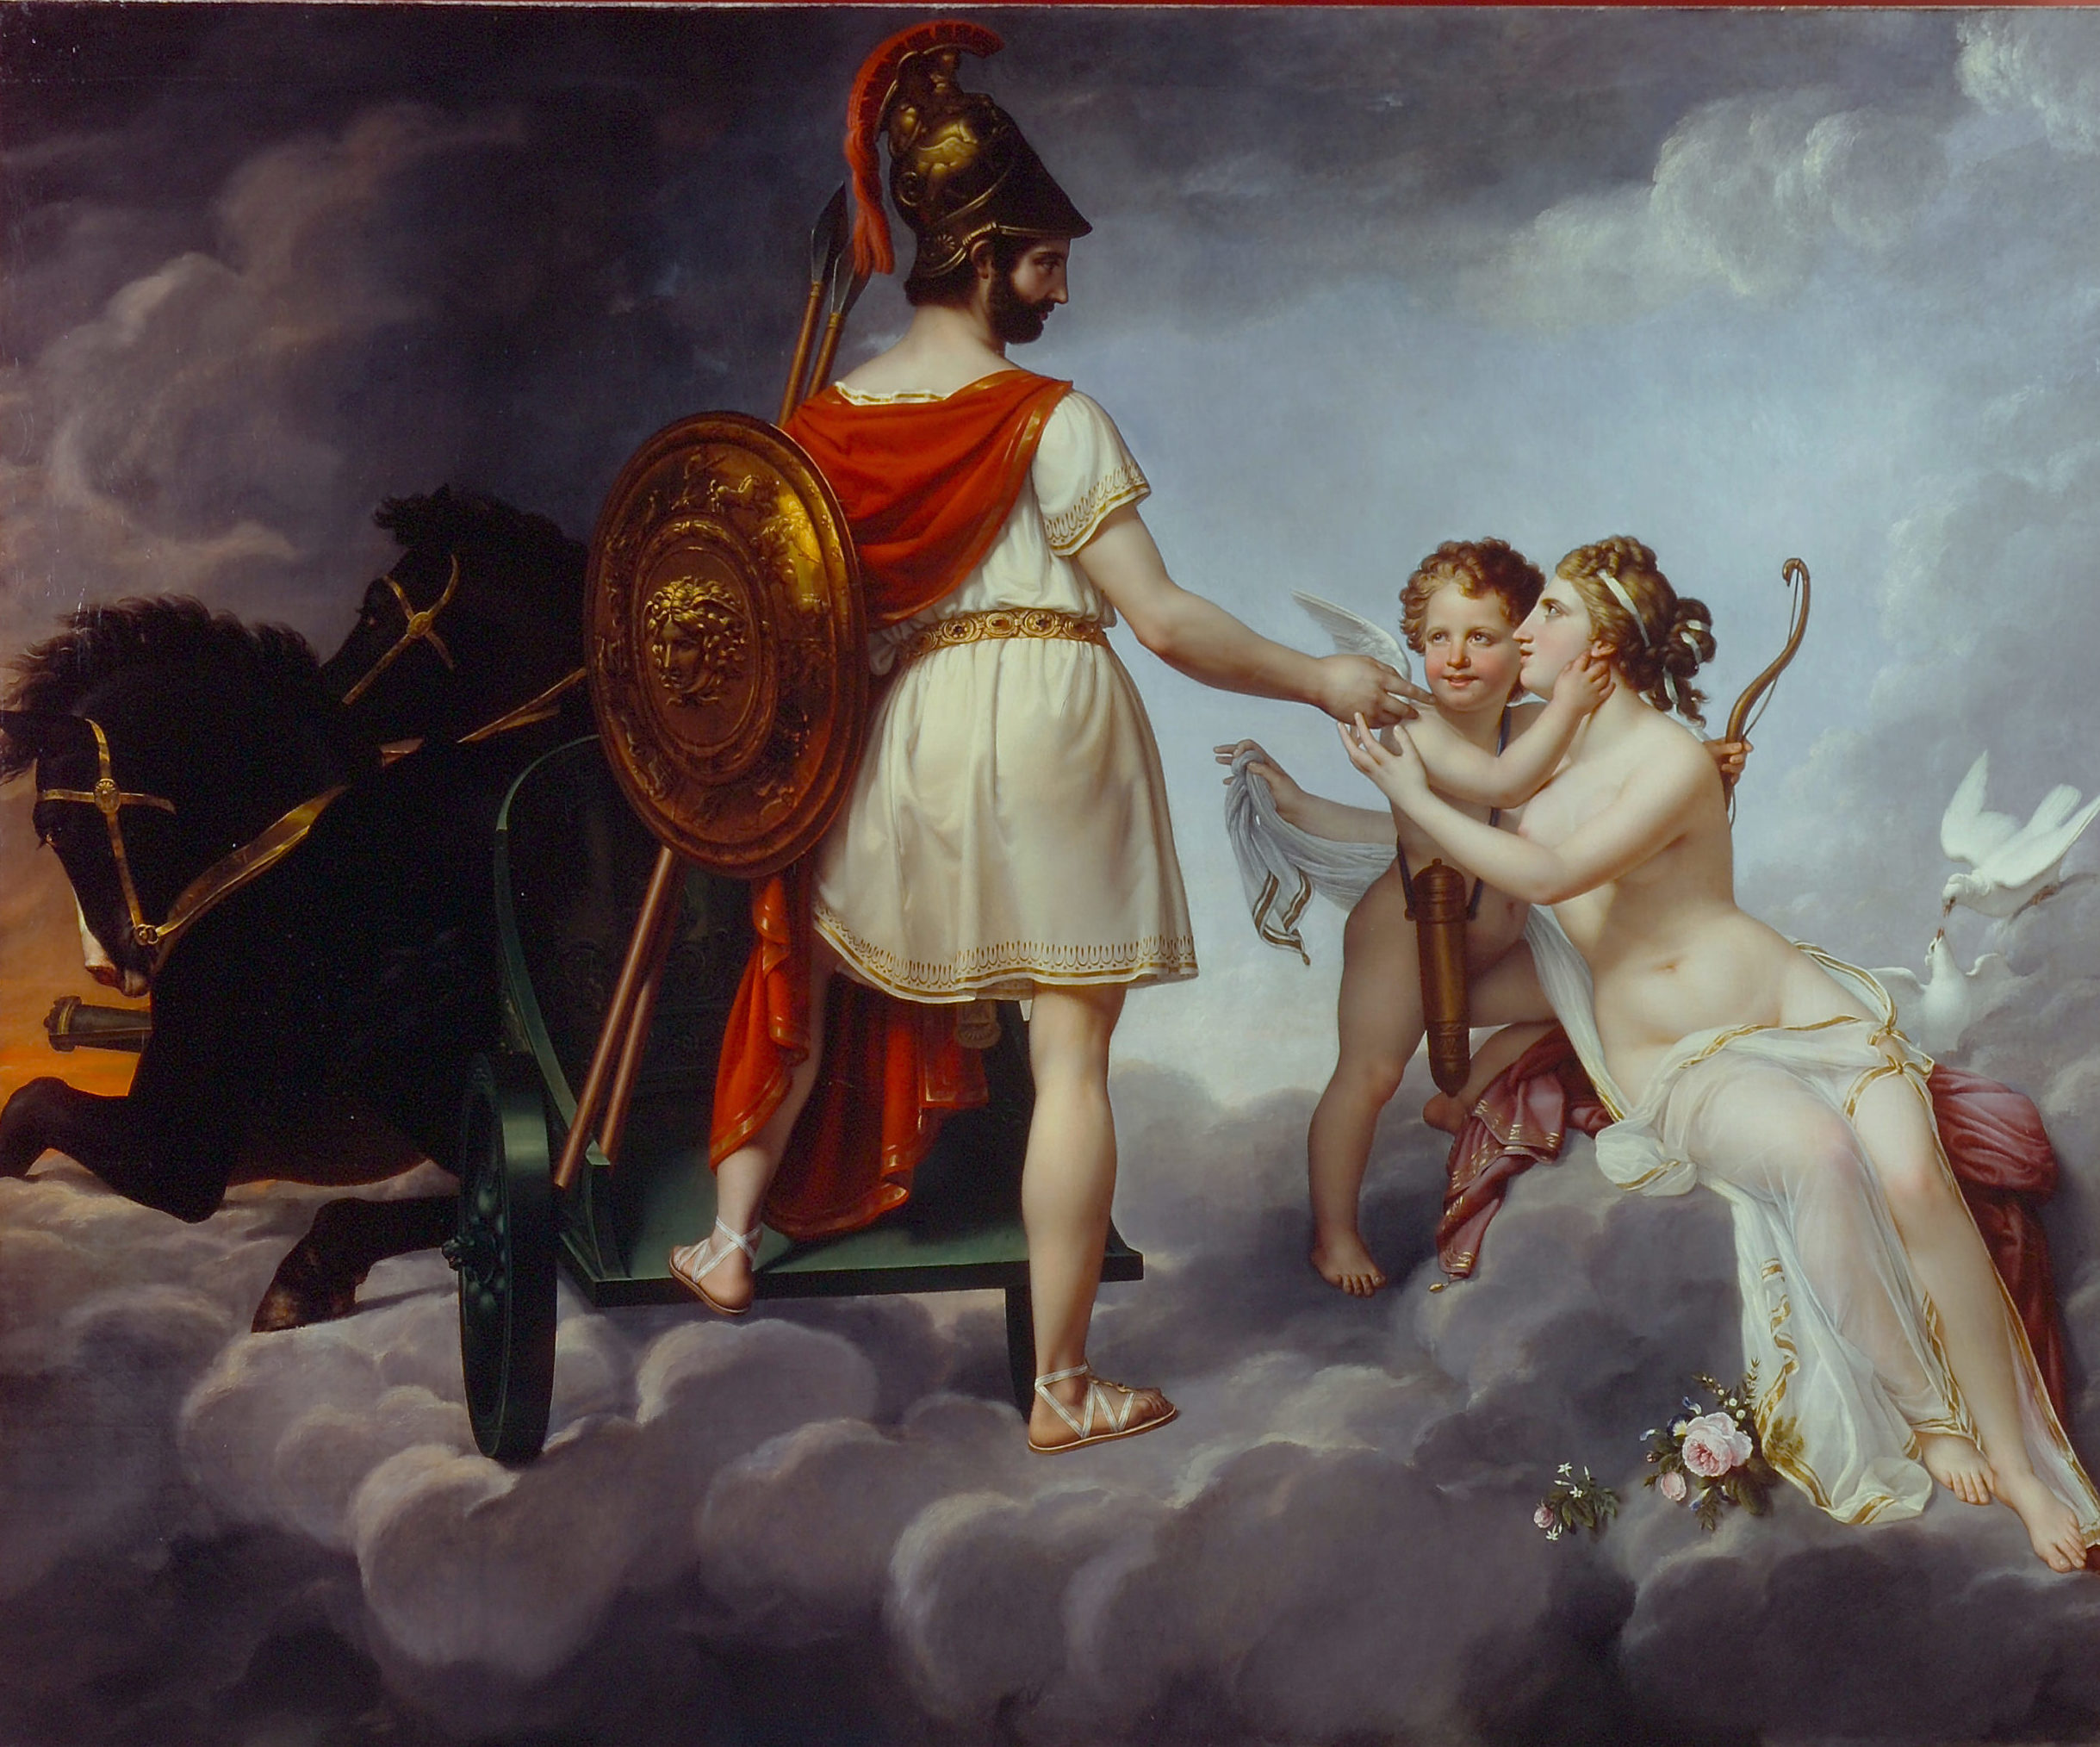 Oil painting scene shows a man in a white Grecian robe with red cape, bronze shield, and bronze helmet standing among clouds with two black horses connected to a chariot in front of him. He reaches out to a pale-skinned nude woman and cherub with doves behind them.